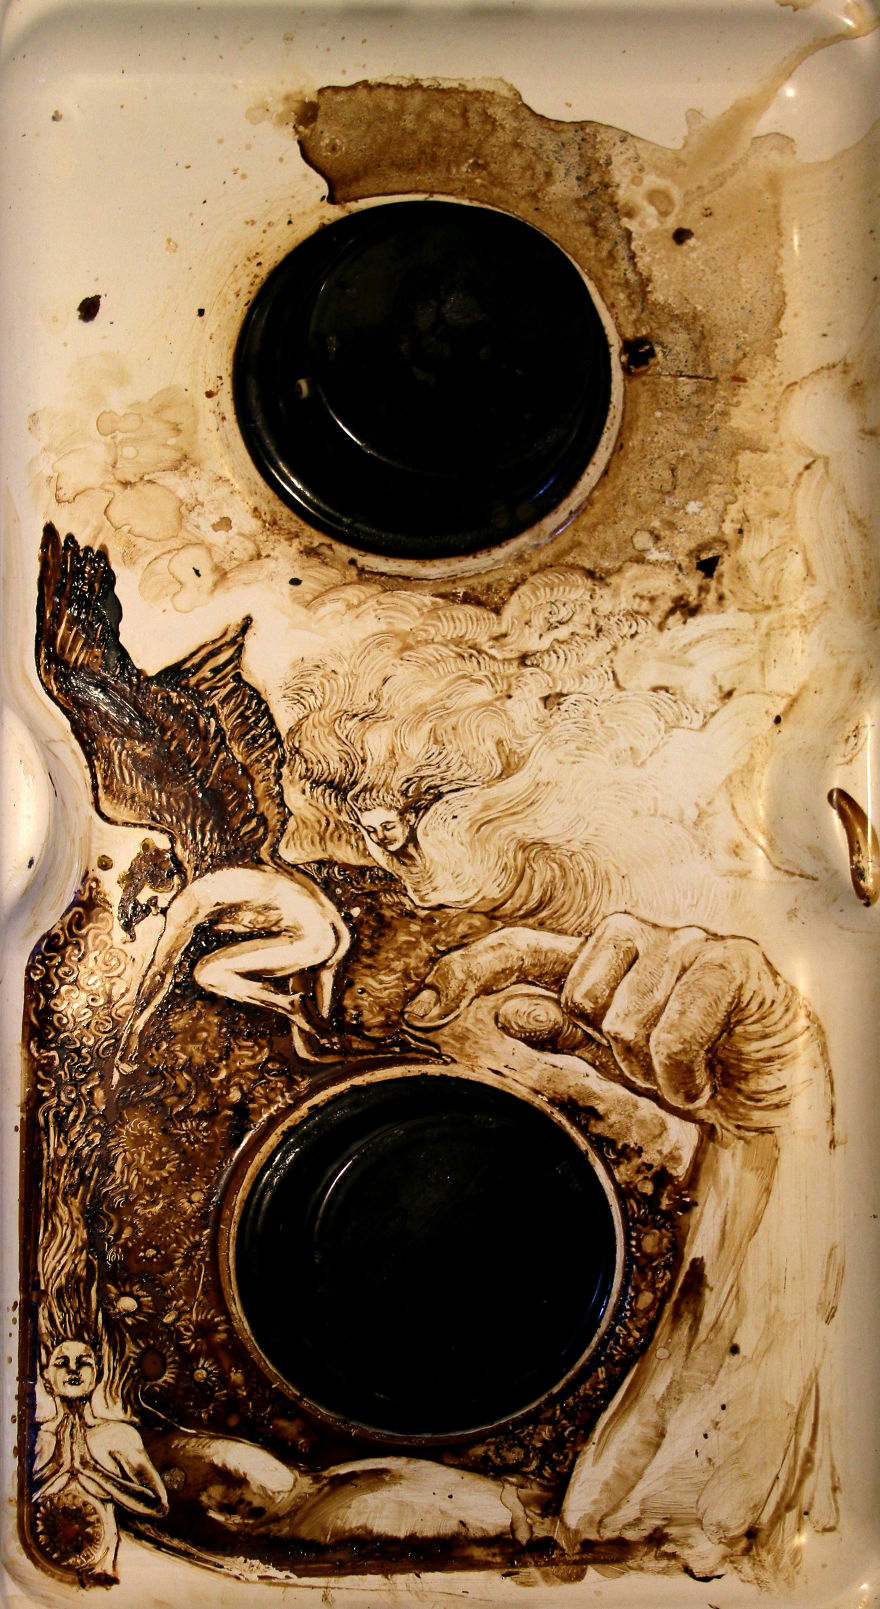 The-coffee-stain-art-process__880